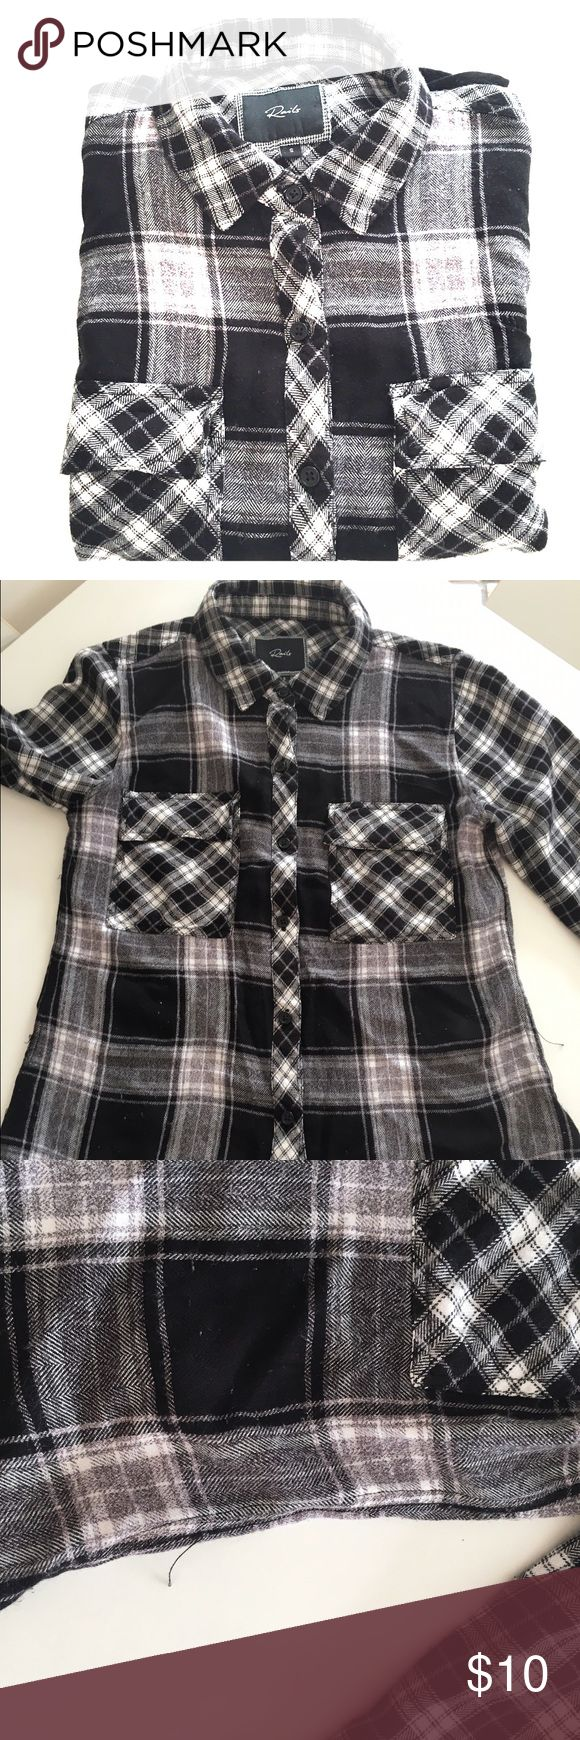 Rails plaid black and white flannel size s Rails black and white flannel! Keep it cool and causal. Shirt is worn. Signs of pulls and pilling. Rails Tops Button Down Shirts